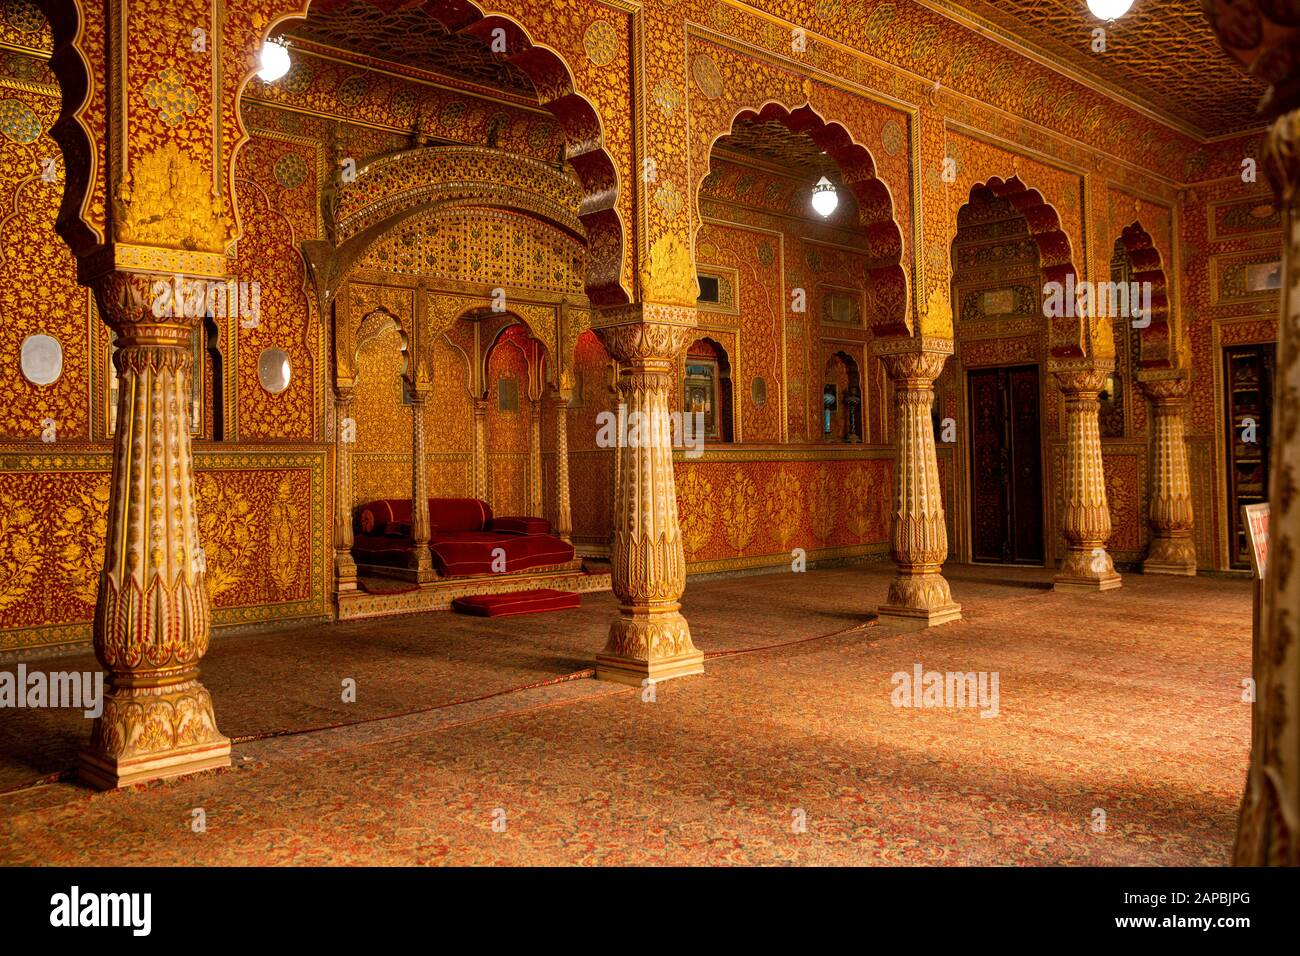 India, Rajasthan, Shekhawati, Bikaner, city centre, Junagarh Fort, Anup Mahal, private audience hall with patterned red and gold lacquered walls Stock Photo